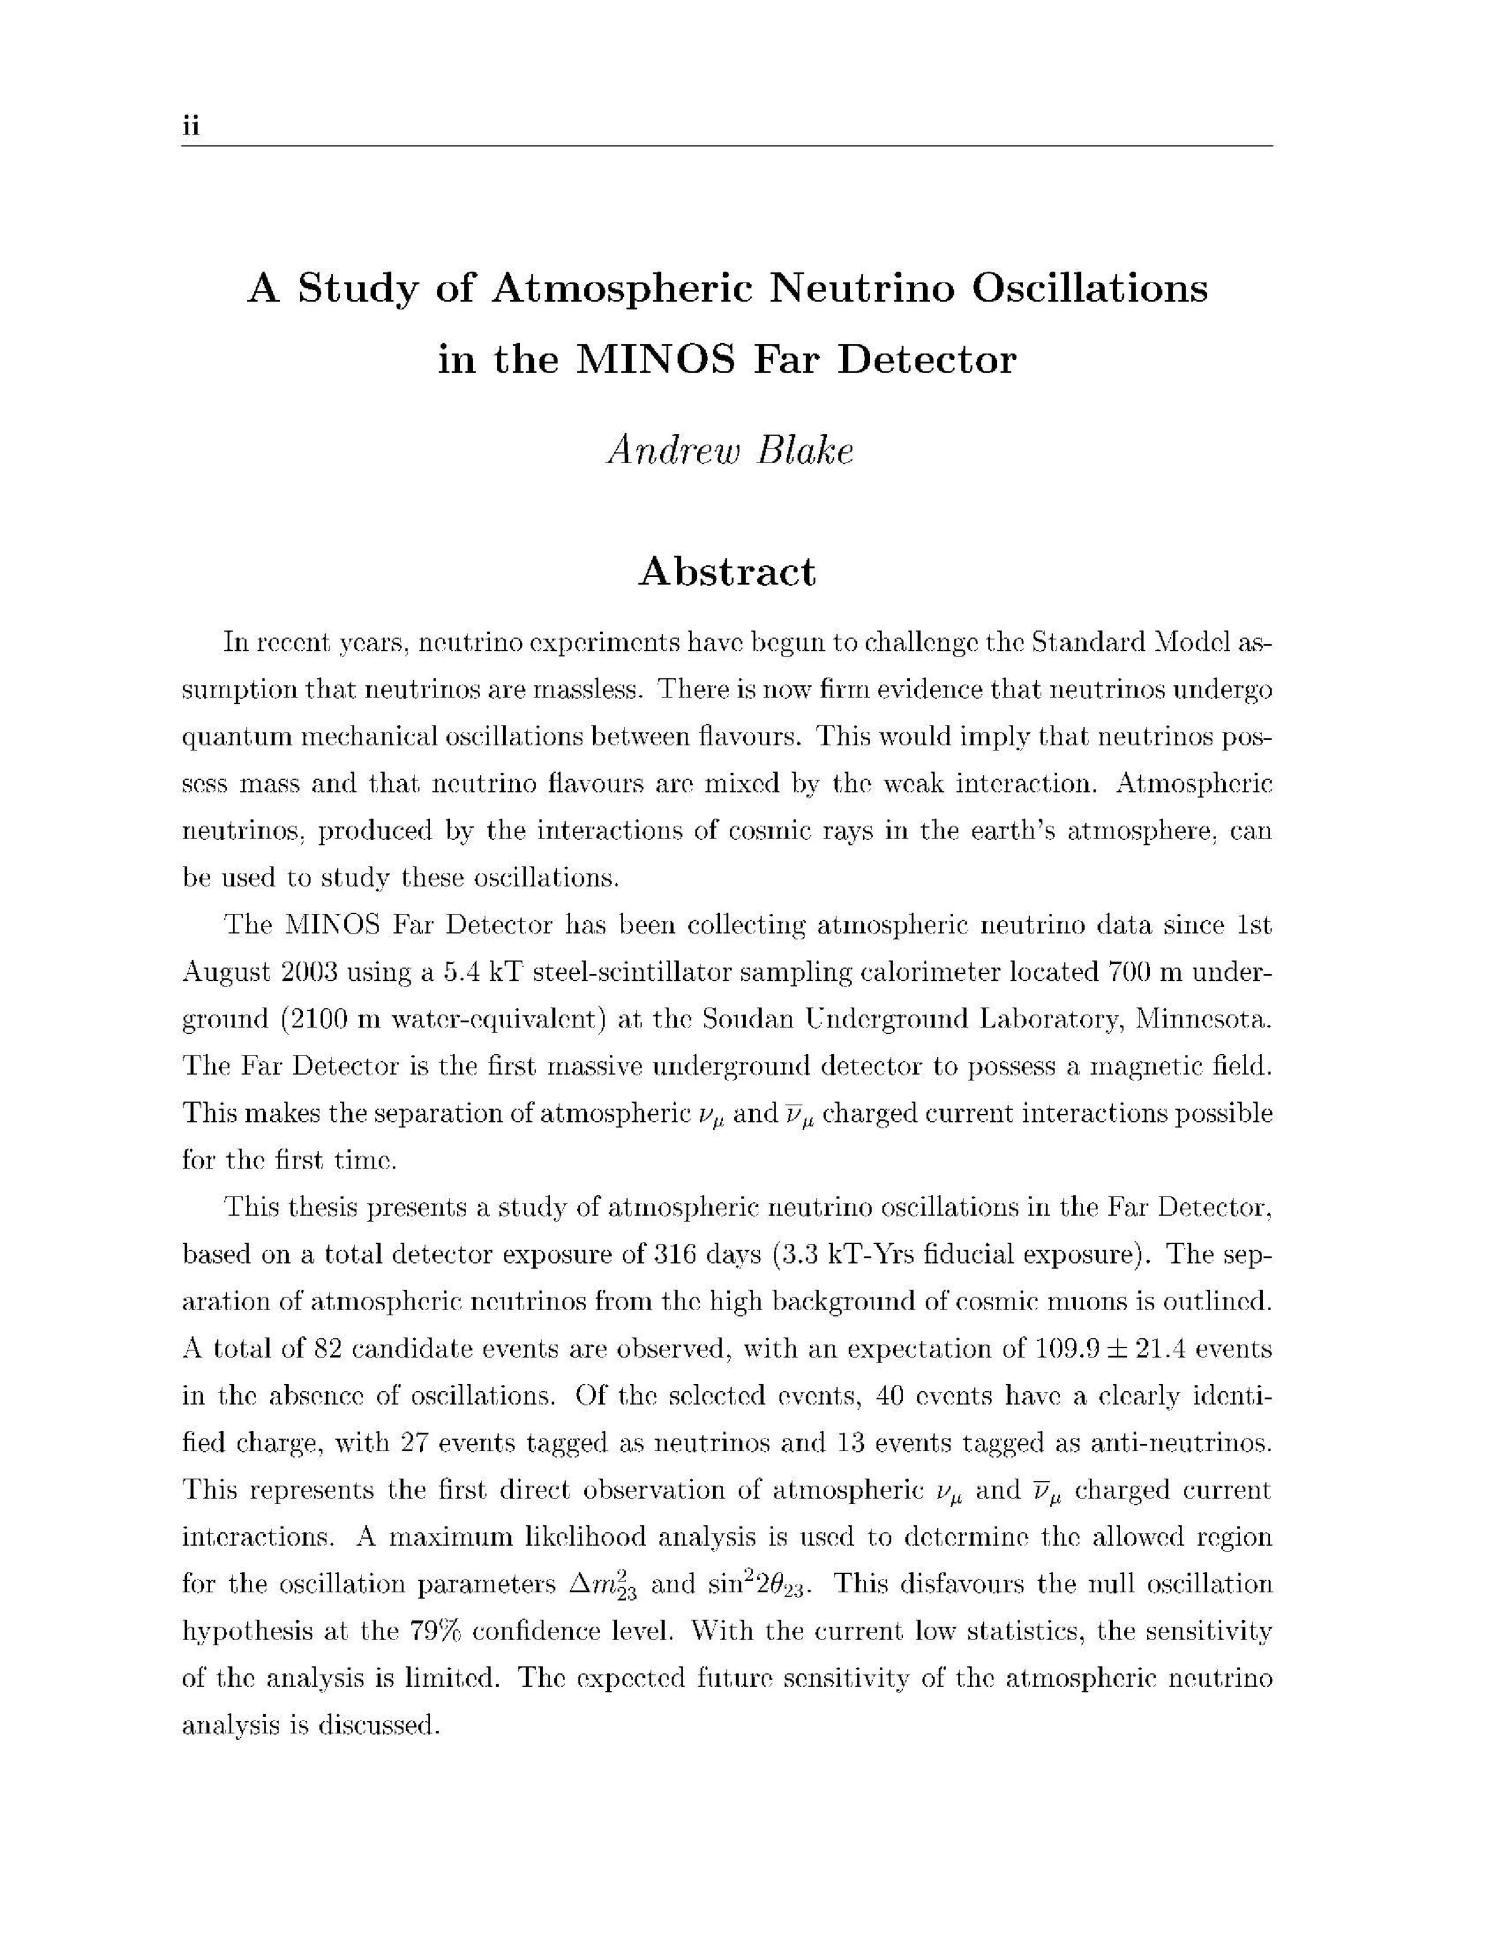 A study of atmospheric neutrino oscillations in the MINOS far detector                                                                                                      [Sequence #]: 2 of 257